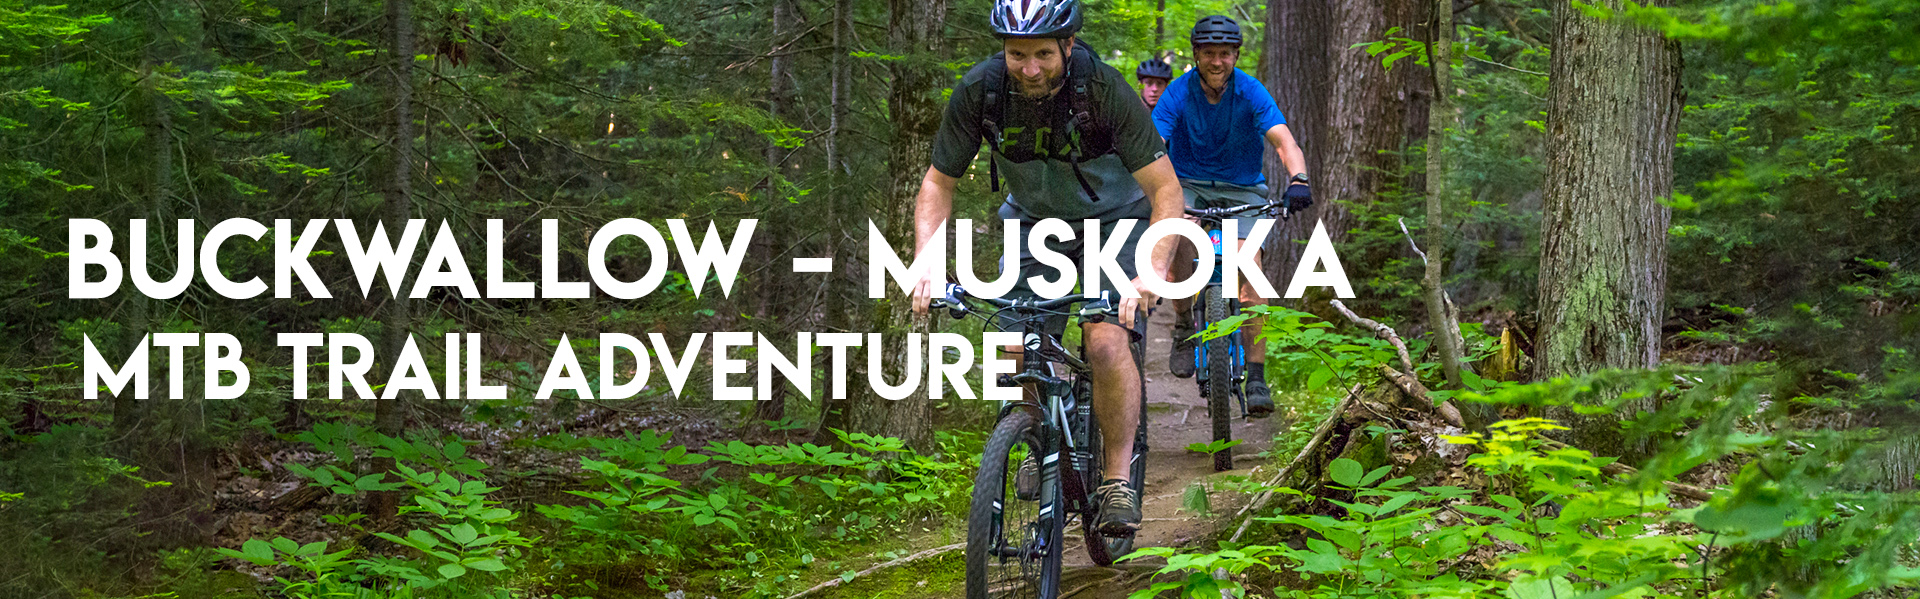 Buckwallow – Muskoka MTB Trail Adventures